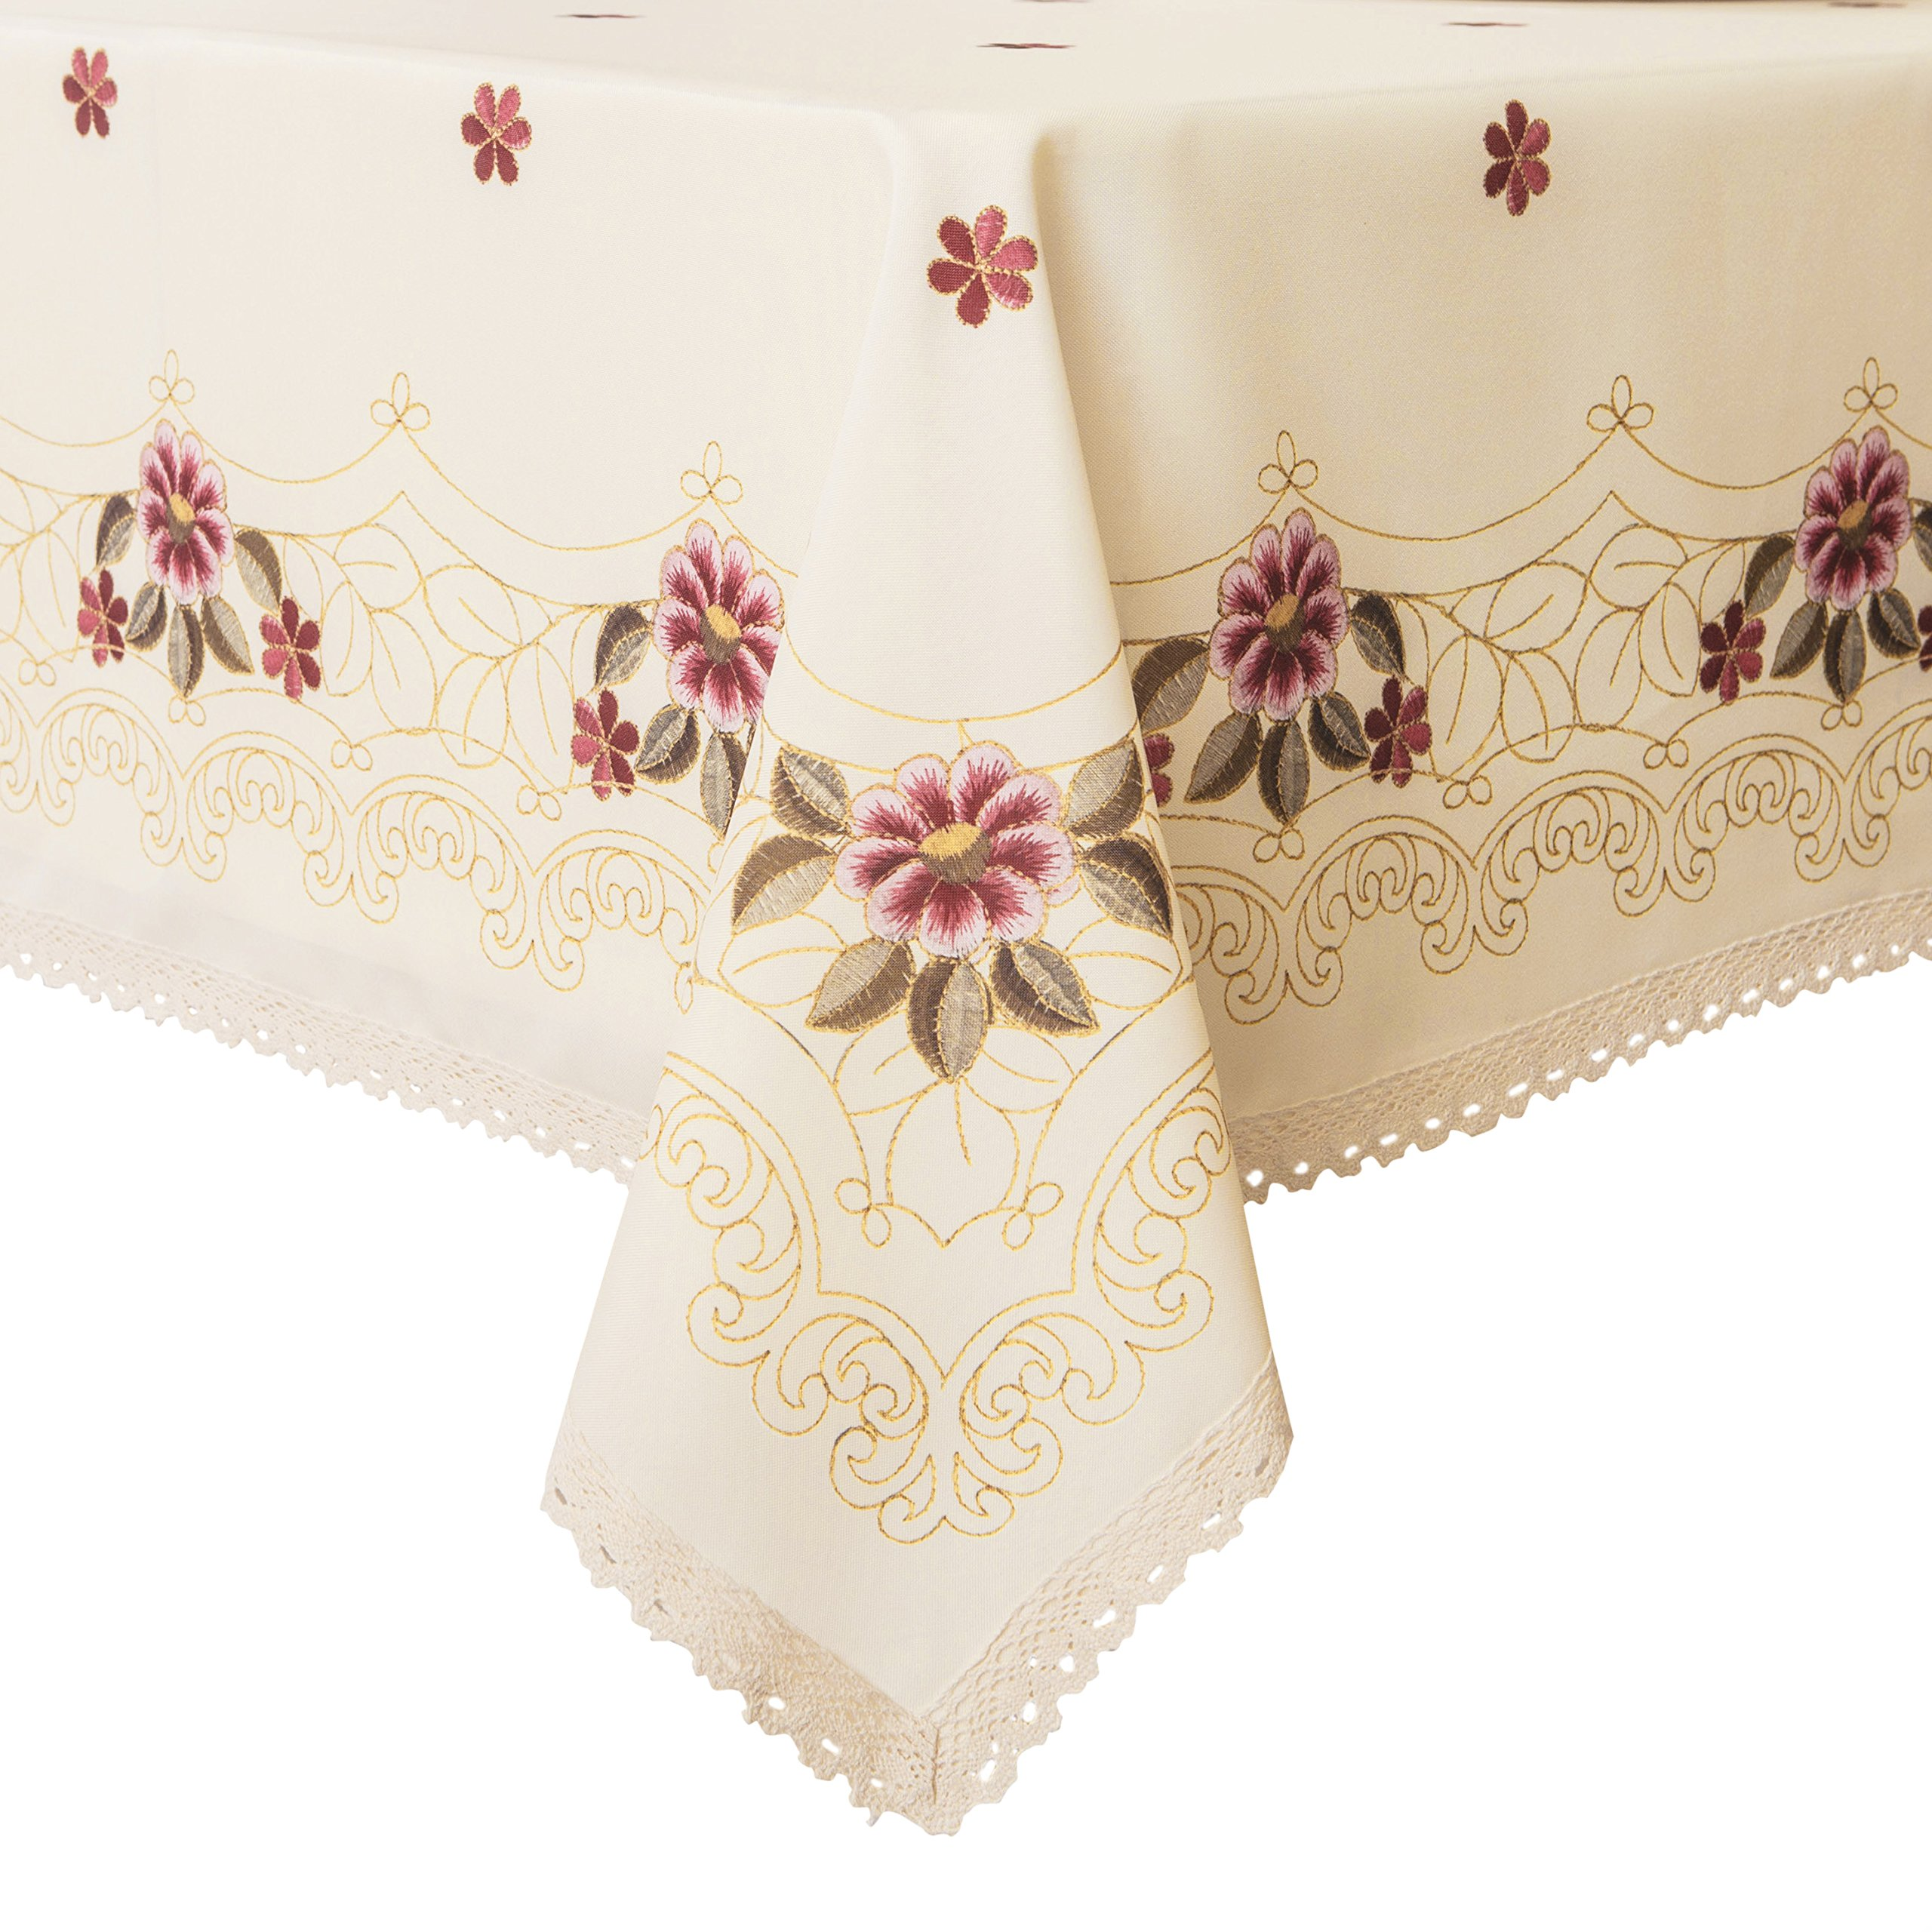 Wewoch Decorative Red Floral Print Lace Water Resistant Tablecloth Wrinkle Free and Stain Resistant Fabric Tablecloths for Kitchen Room 60 Inch by 84 Inch by Wewoch